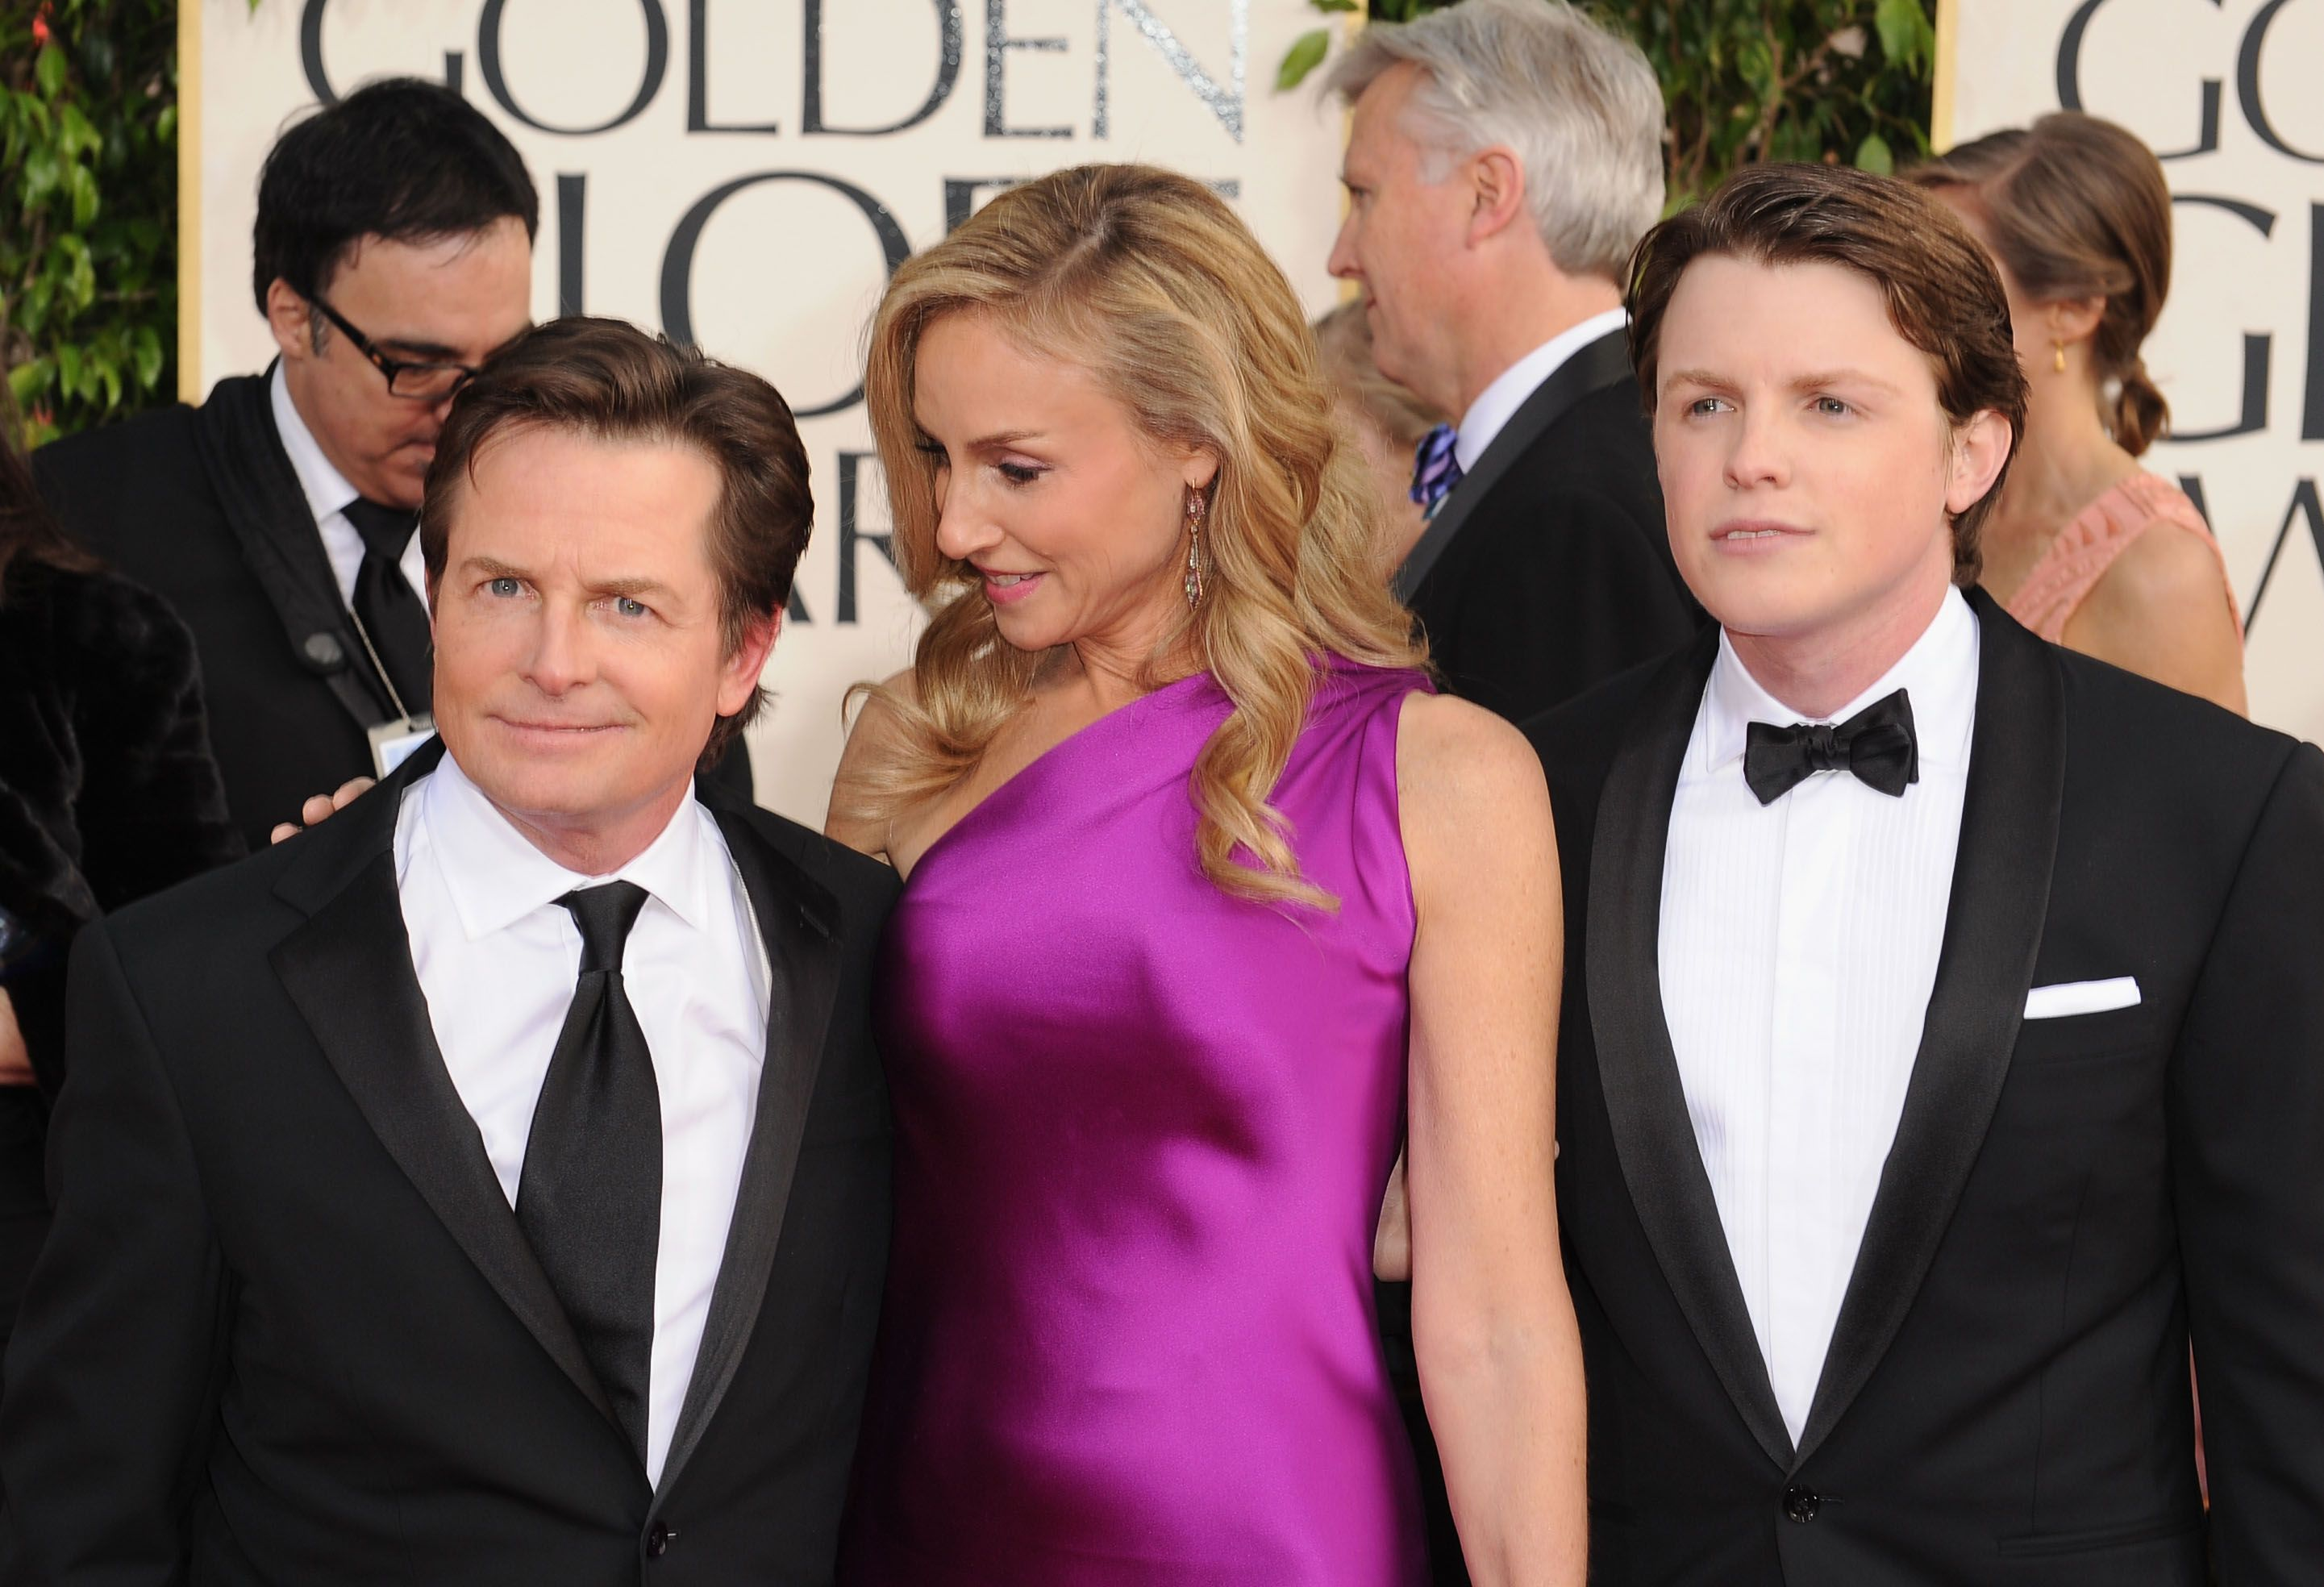 Sam Michael Fox was named Mr. Golden Globe in 2013, sharing the award's duties with Francesca Eastwood. The oldest of Michael J. Fox's four children, he leads a low-key life and usually avoids the media, working at an internet startup .